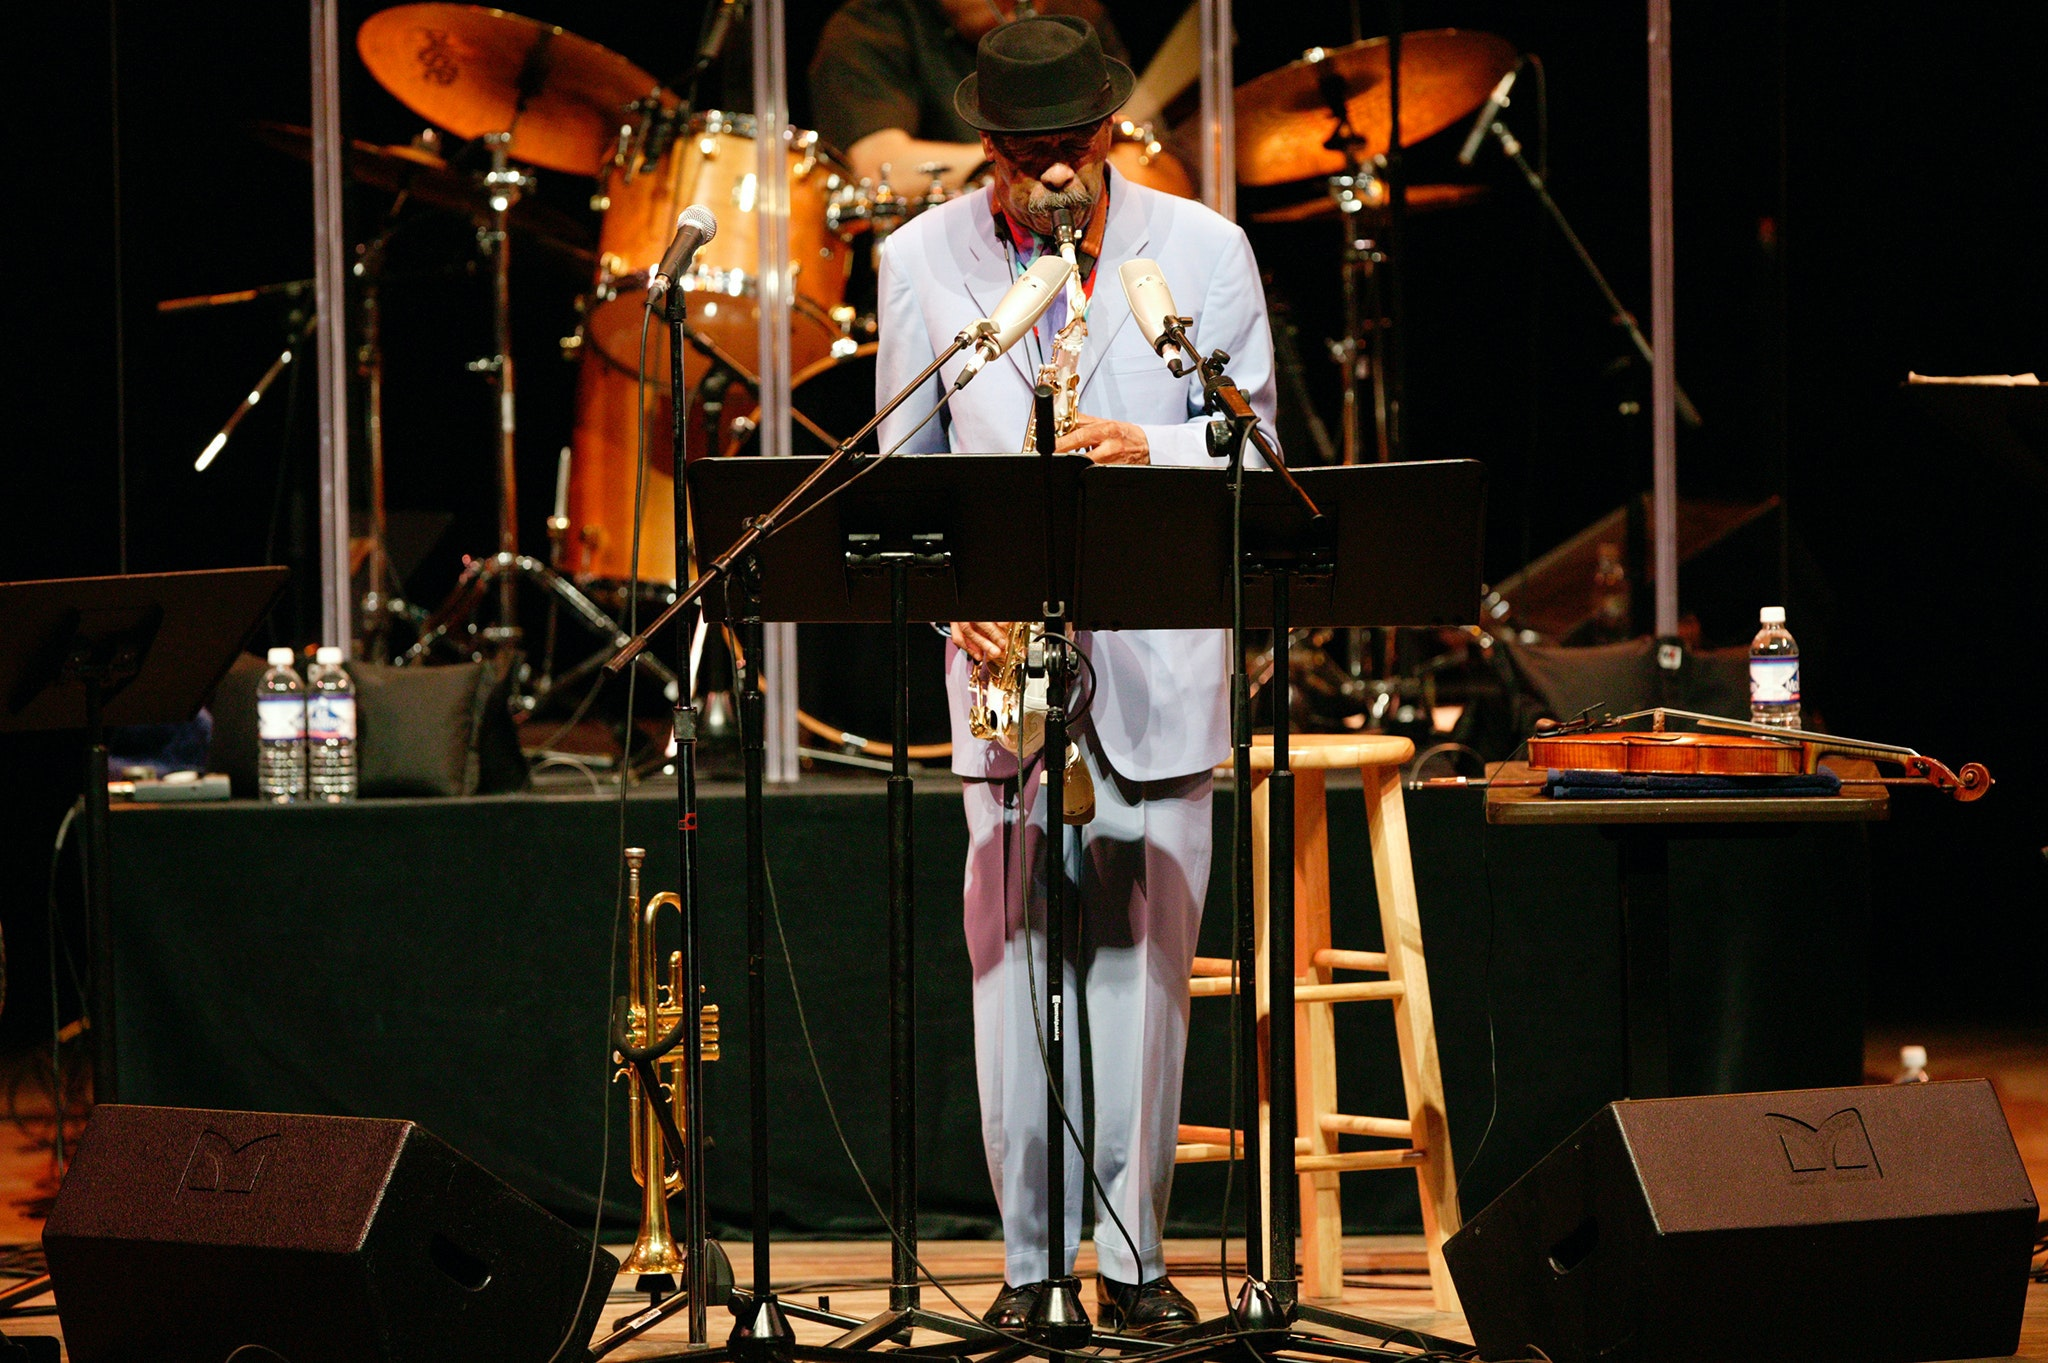 Ornette Coleman playing on stage